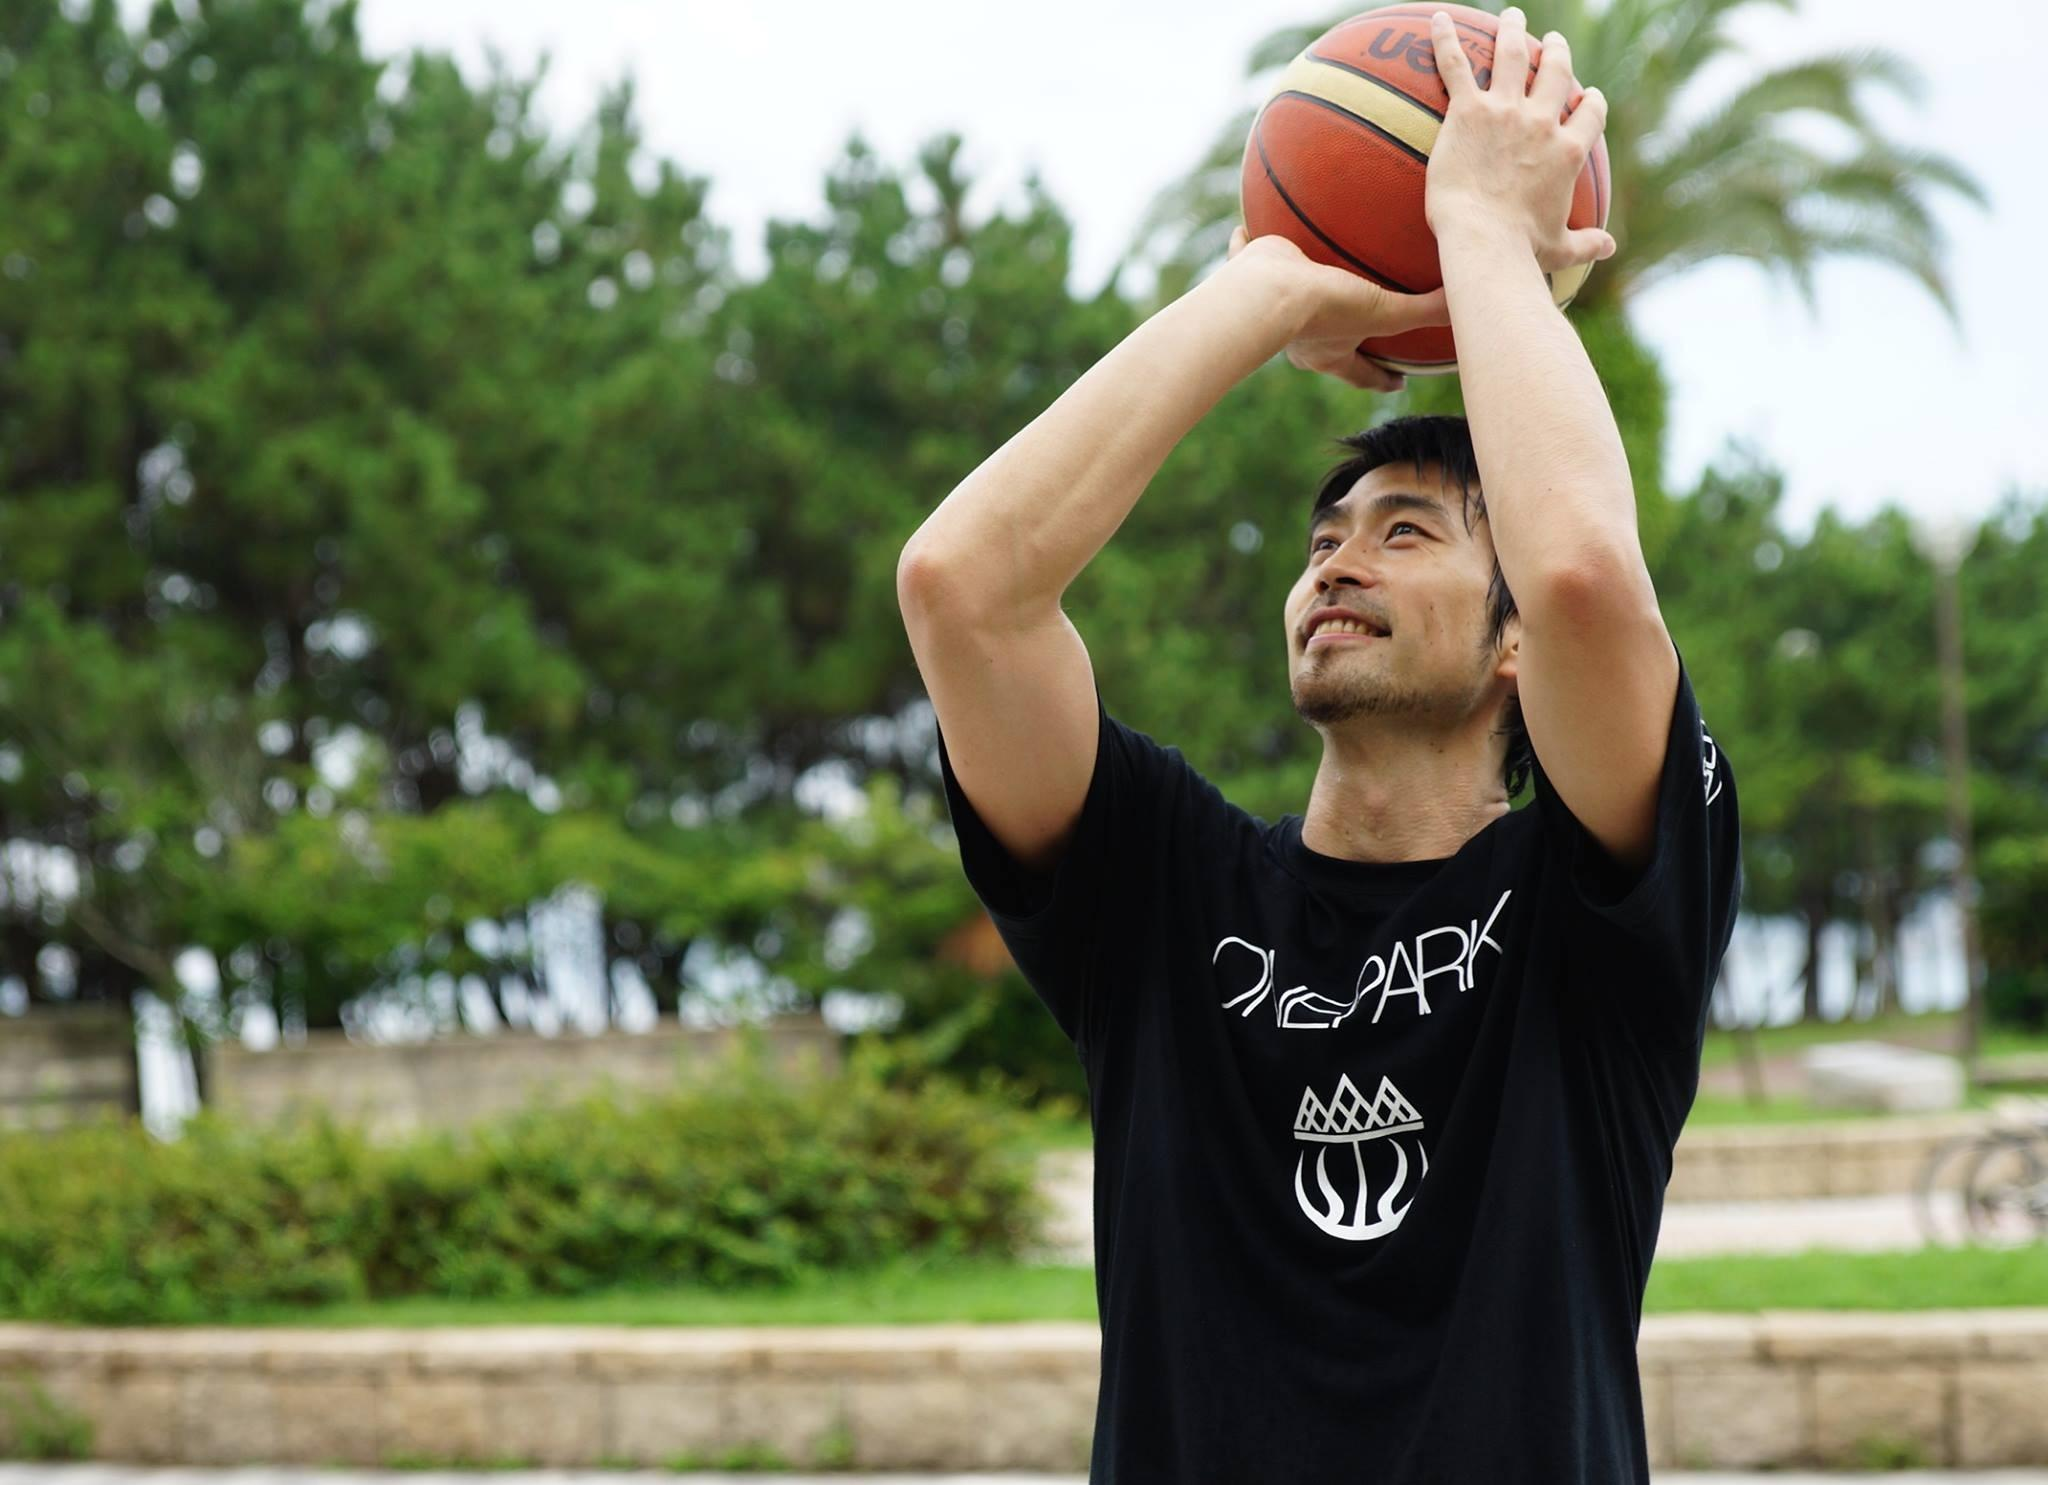 http://onebasketball.jp/wp-content/uploads/2020/05/ono_icon.jpg